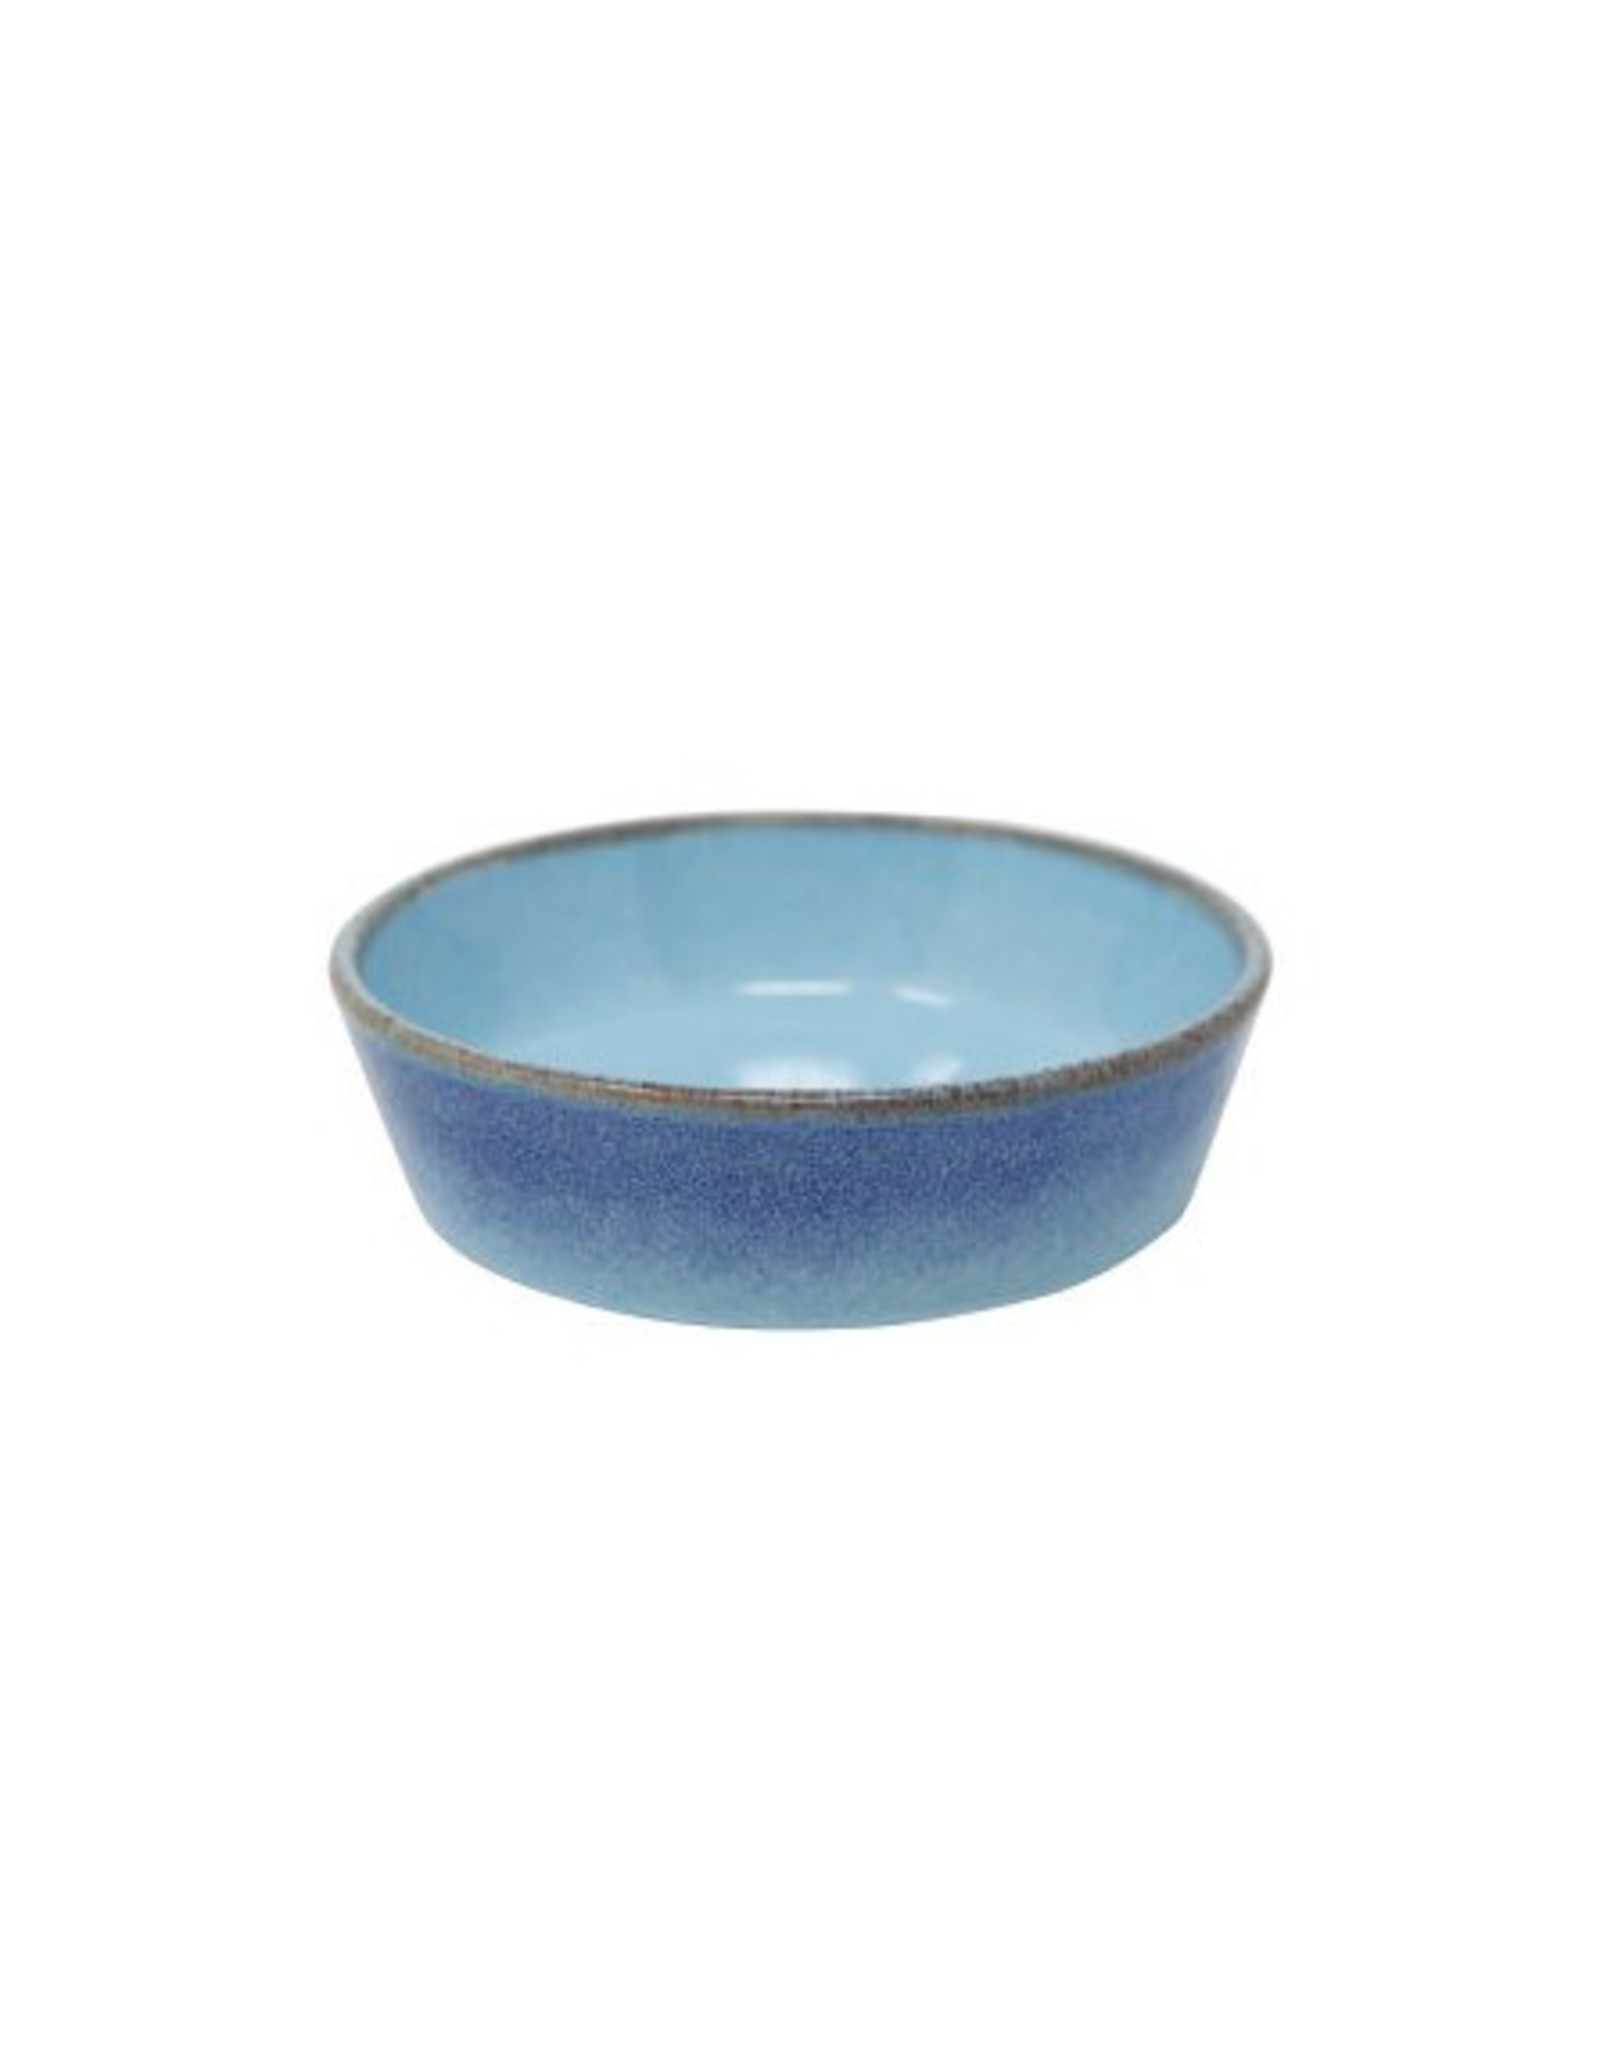 Pioneer Pet Products / Smart Cat Pioneer Pet Ceramic Bowls and Dishes for Dogs and Cats